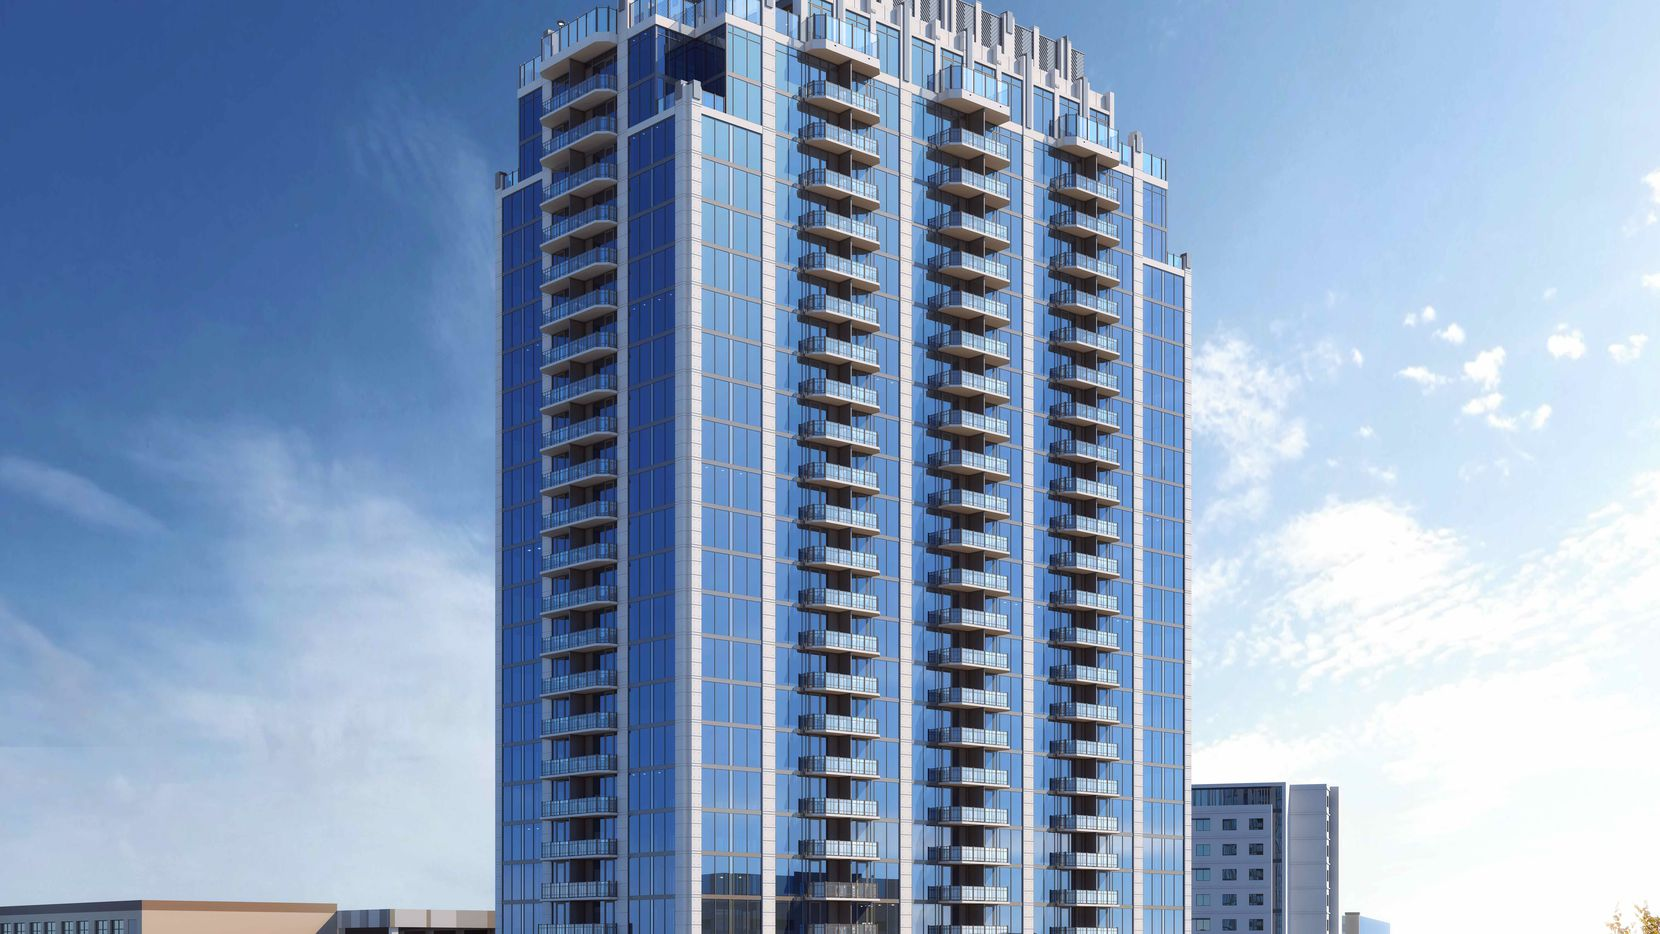 The 25-story SkyHouse Frisco Station apartment tower will open in 2019.